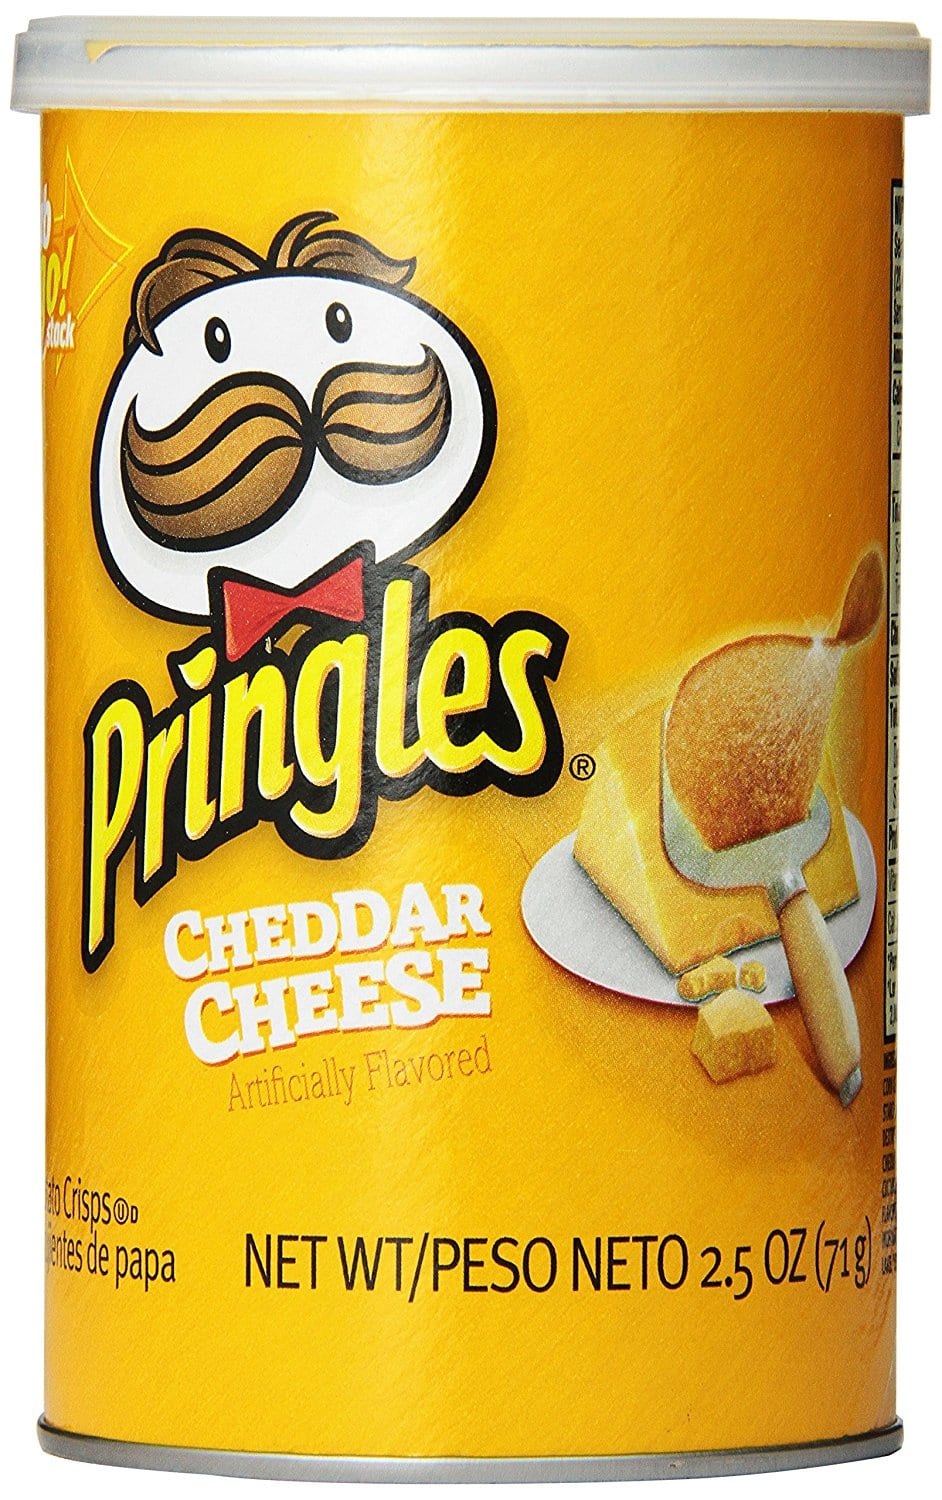 Pringles Cheddar Cheese Grab and Go Pack, 2.5 Ounce (Pack of 12) $5.30 After 30% Coupon + 15% S&S